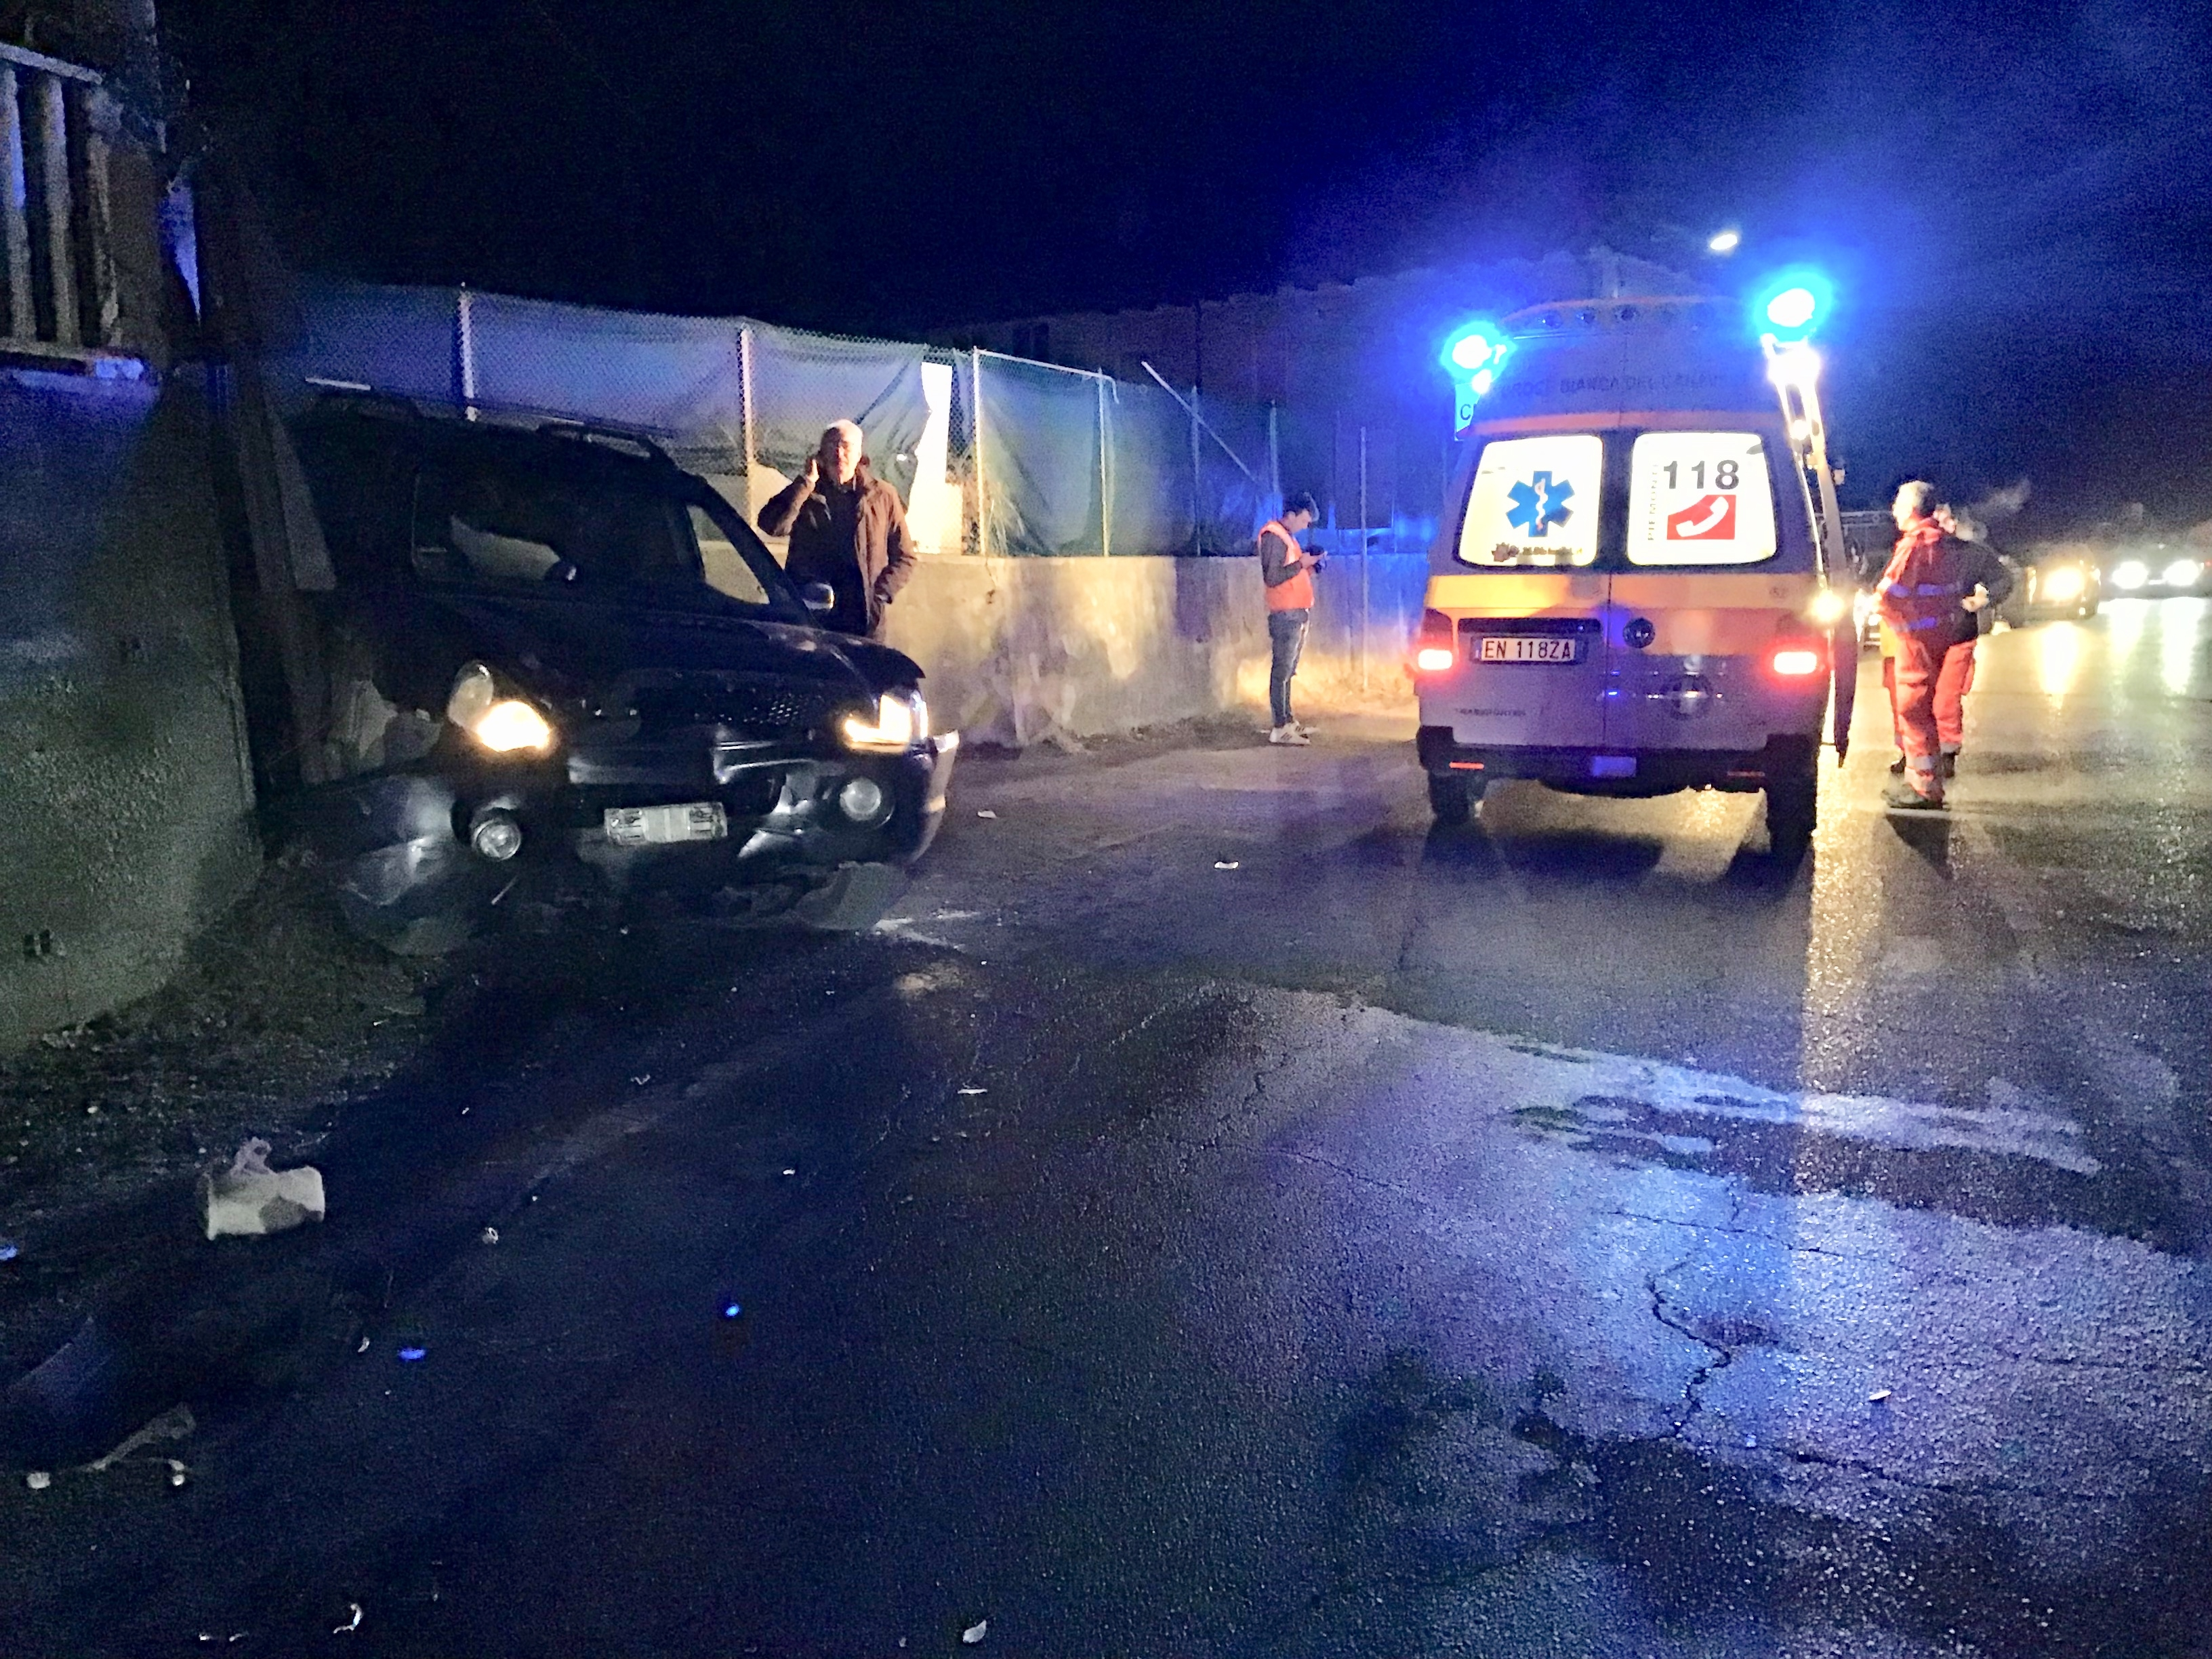 CUORGNÈ-CASTELLAMONTE - Incidente stradale a Piova: due feriti - FOTO E VIDEO